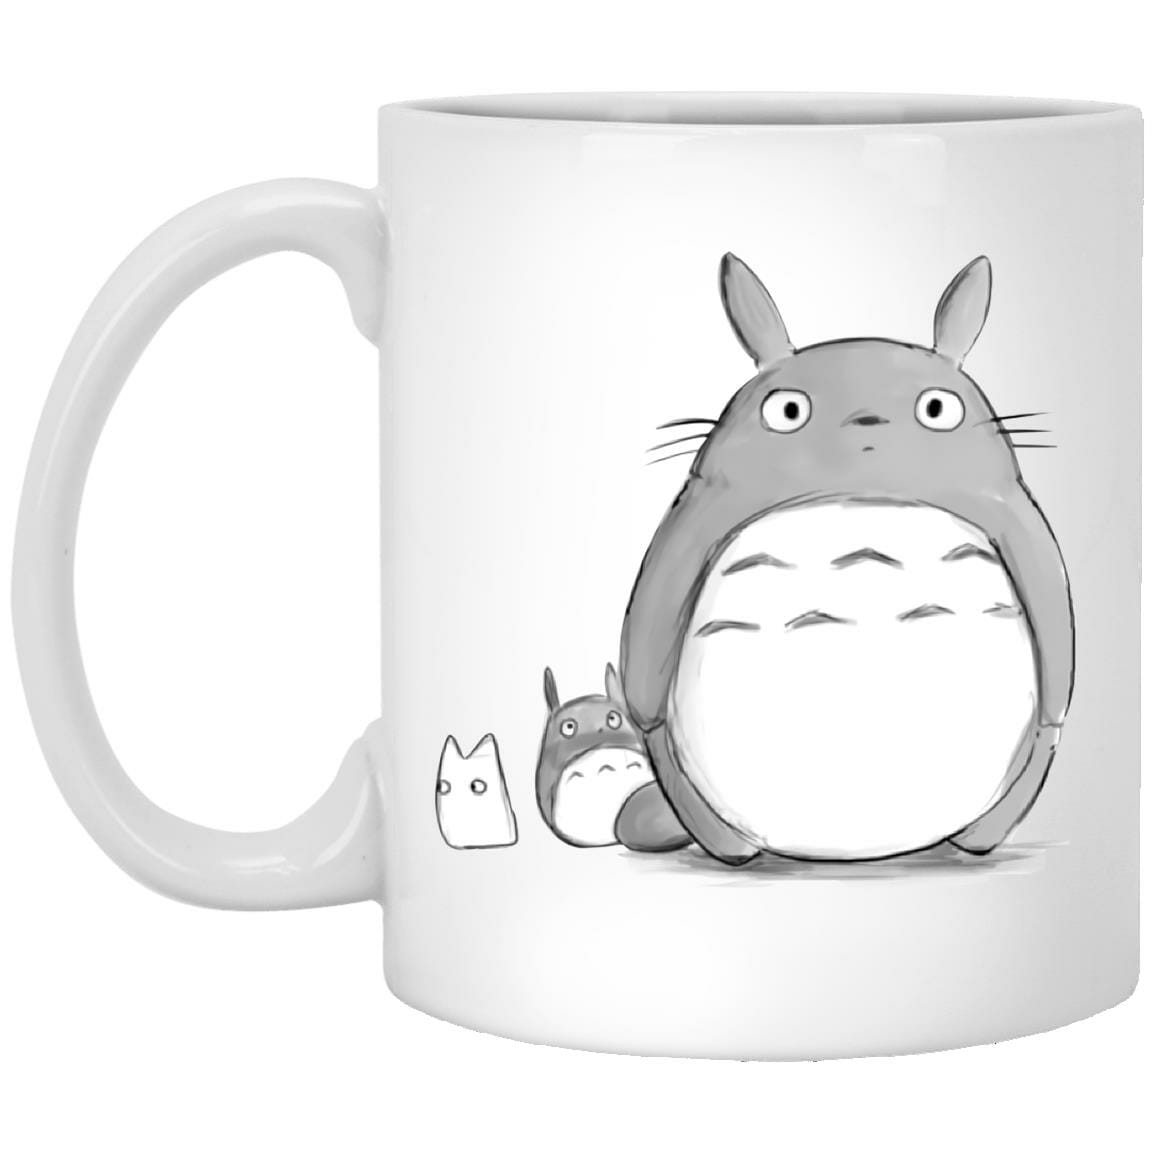 My Neighbor Totoro: The Giant and the Mini Mug